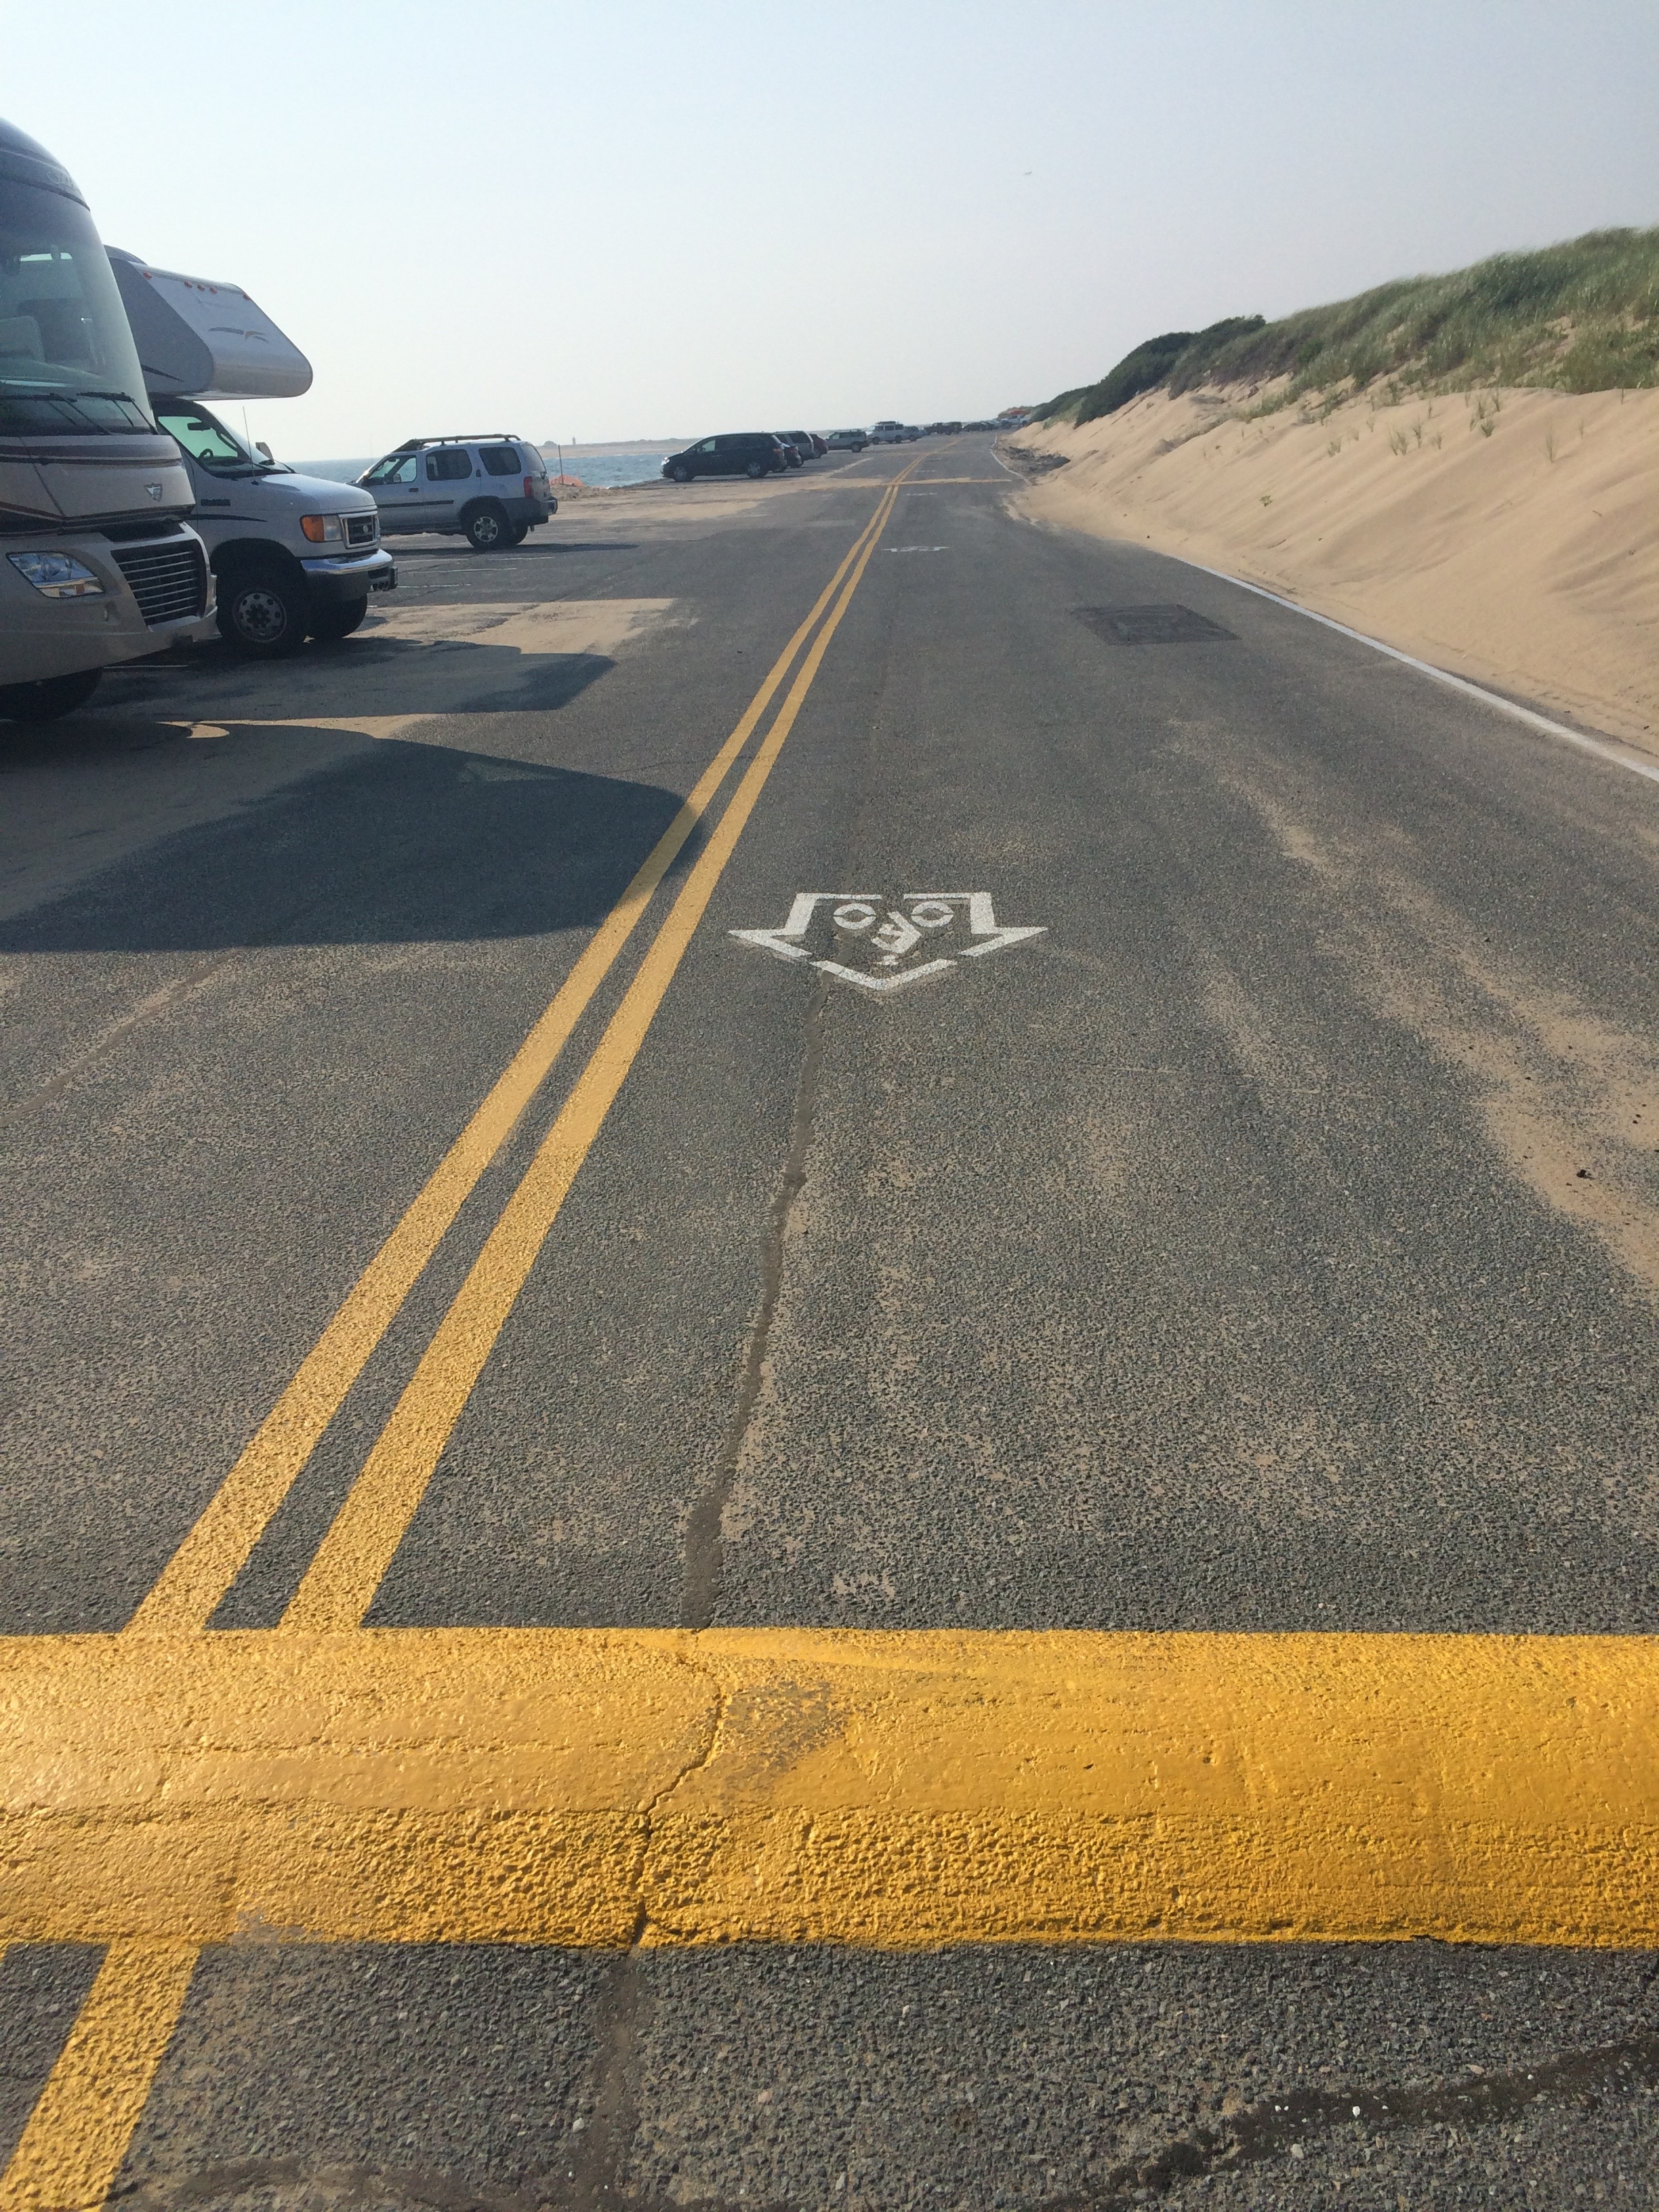 """An old-style """"bike in house"""" shared lane marking pointing in the wrong direction at the Herring Cove parking lot in Provincetown"""